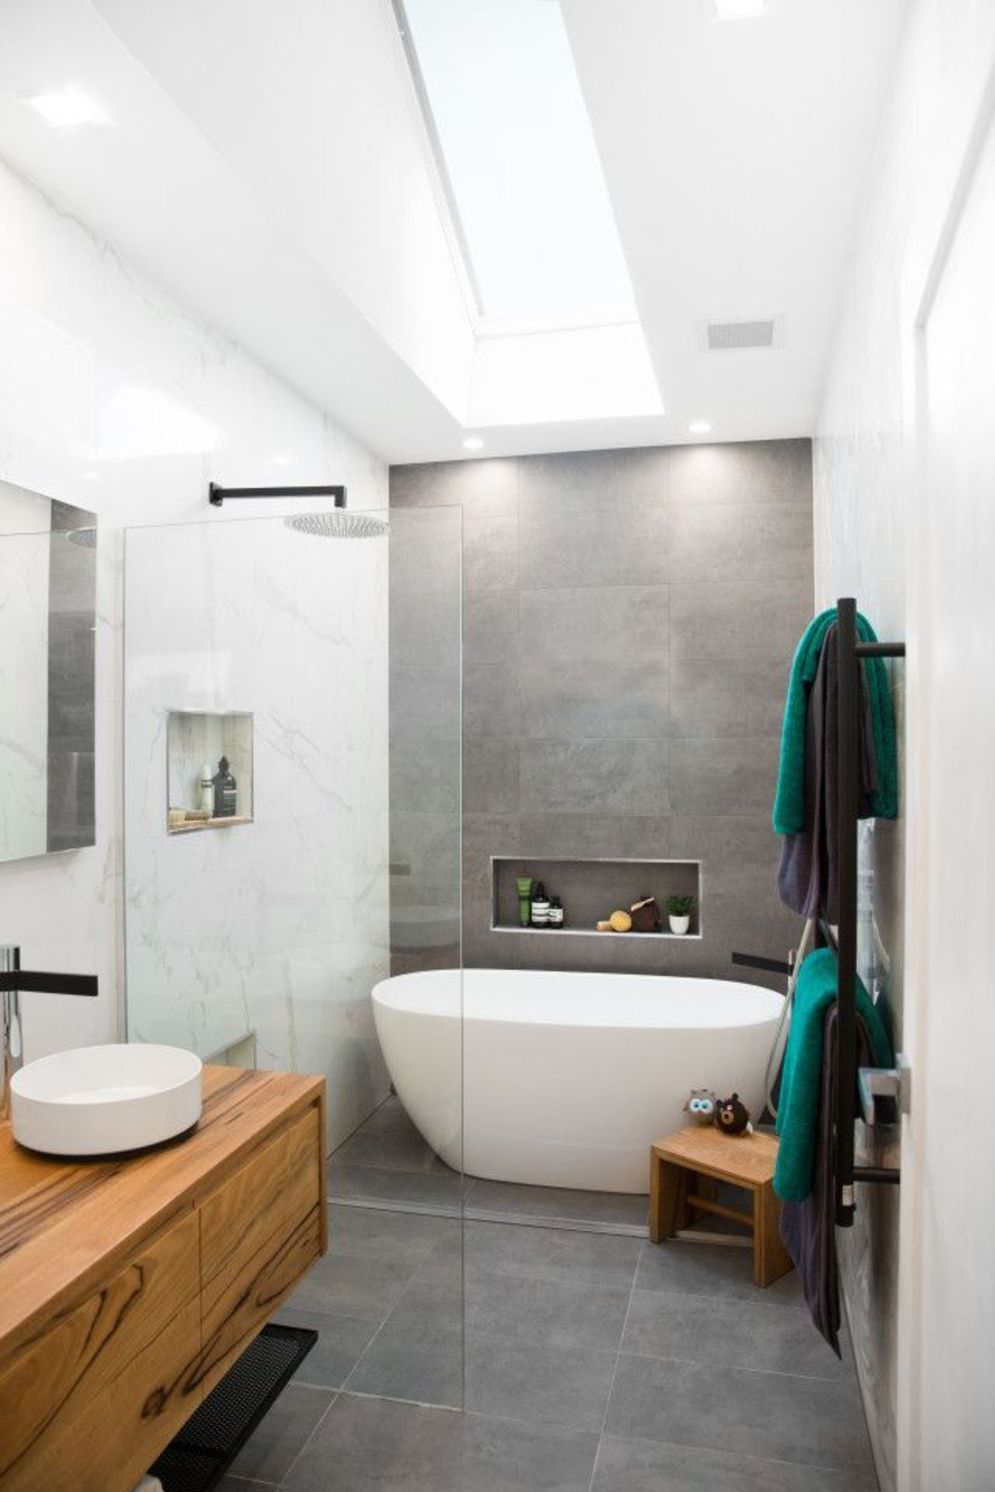 Most savvy bathroom designs with elegant wood finish to give more natural feel Image 18